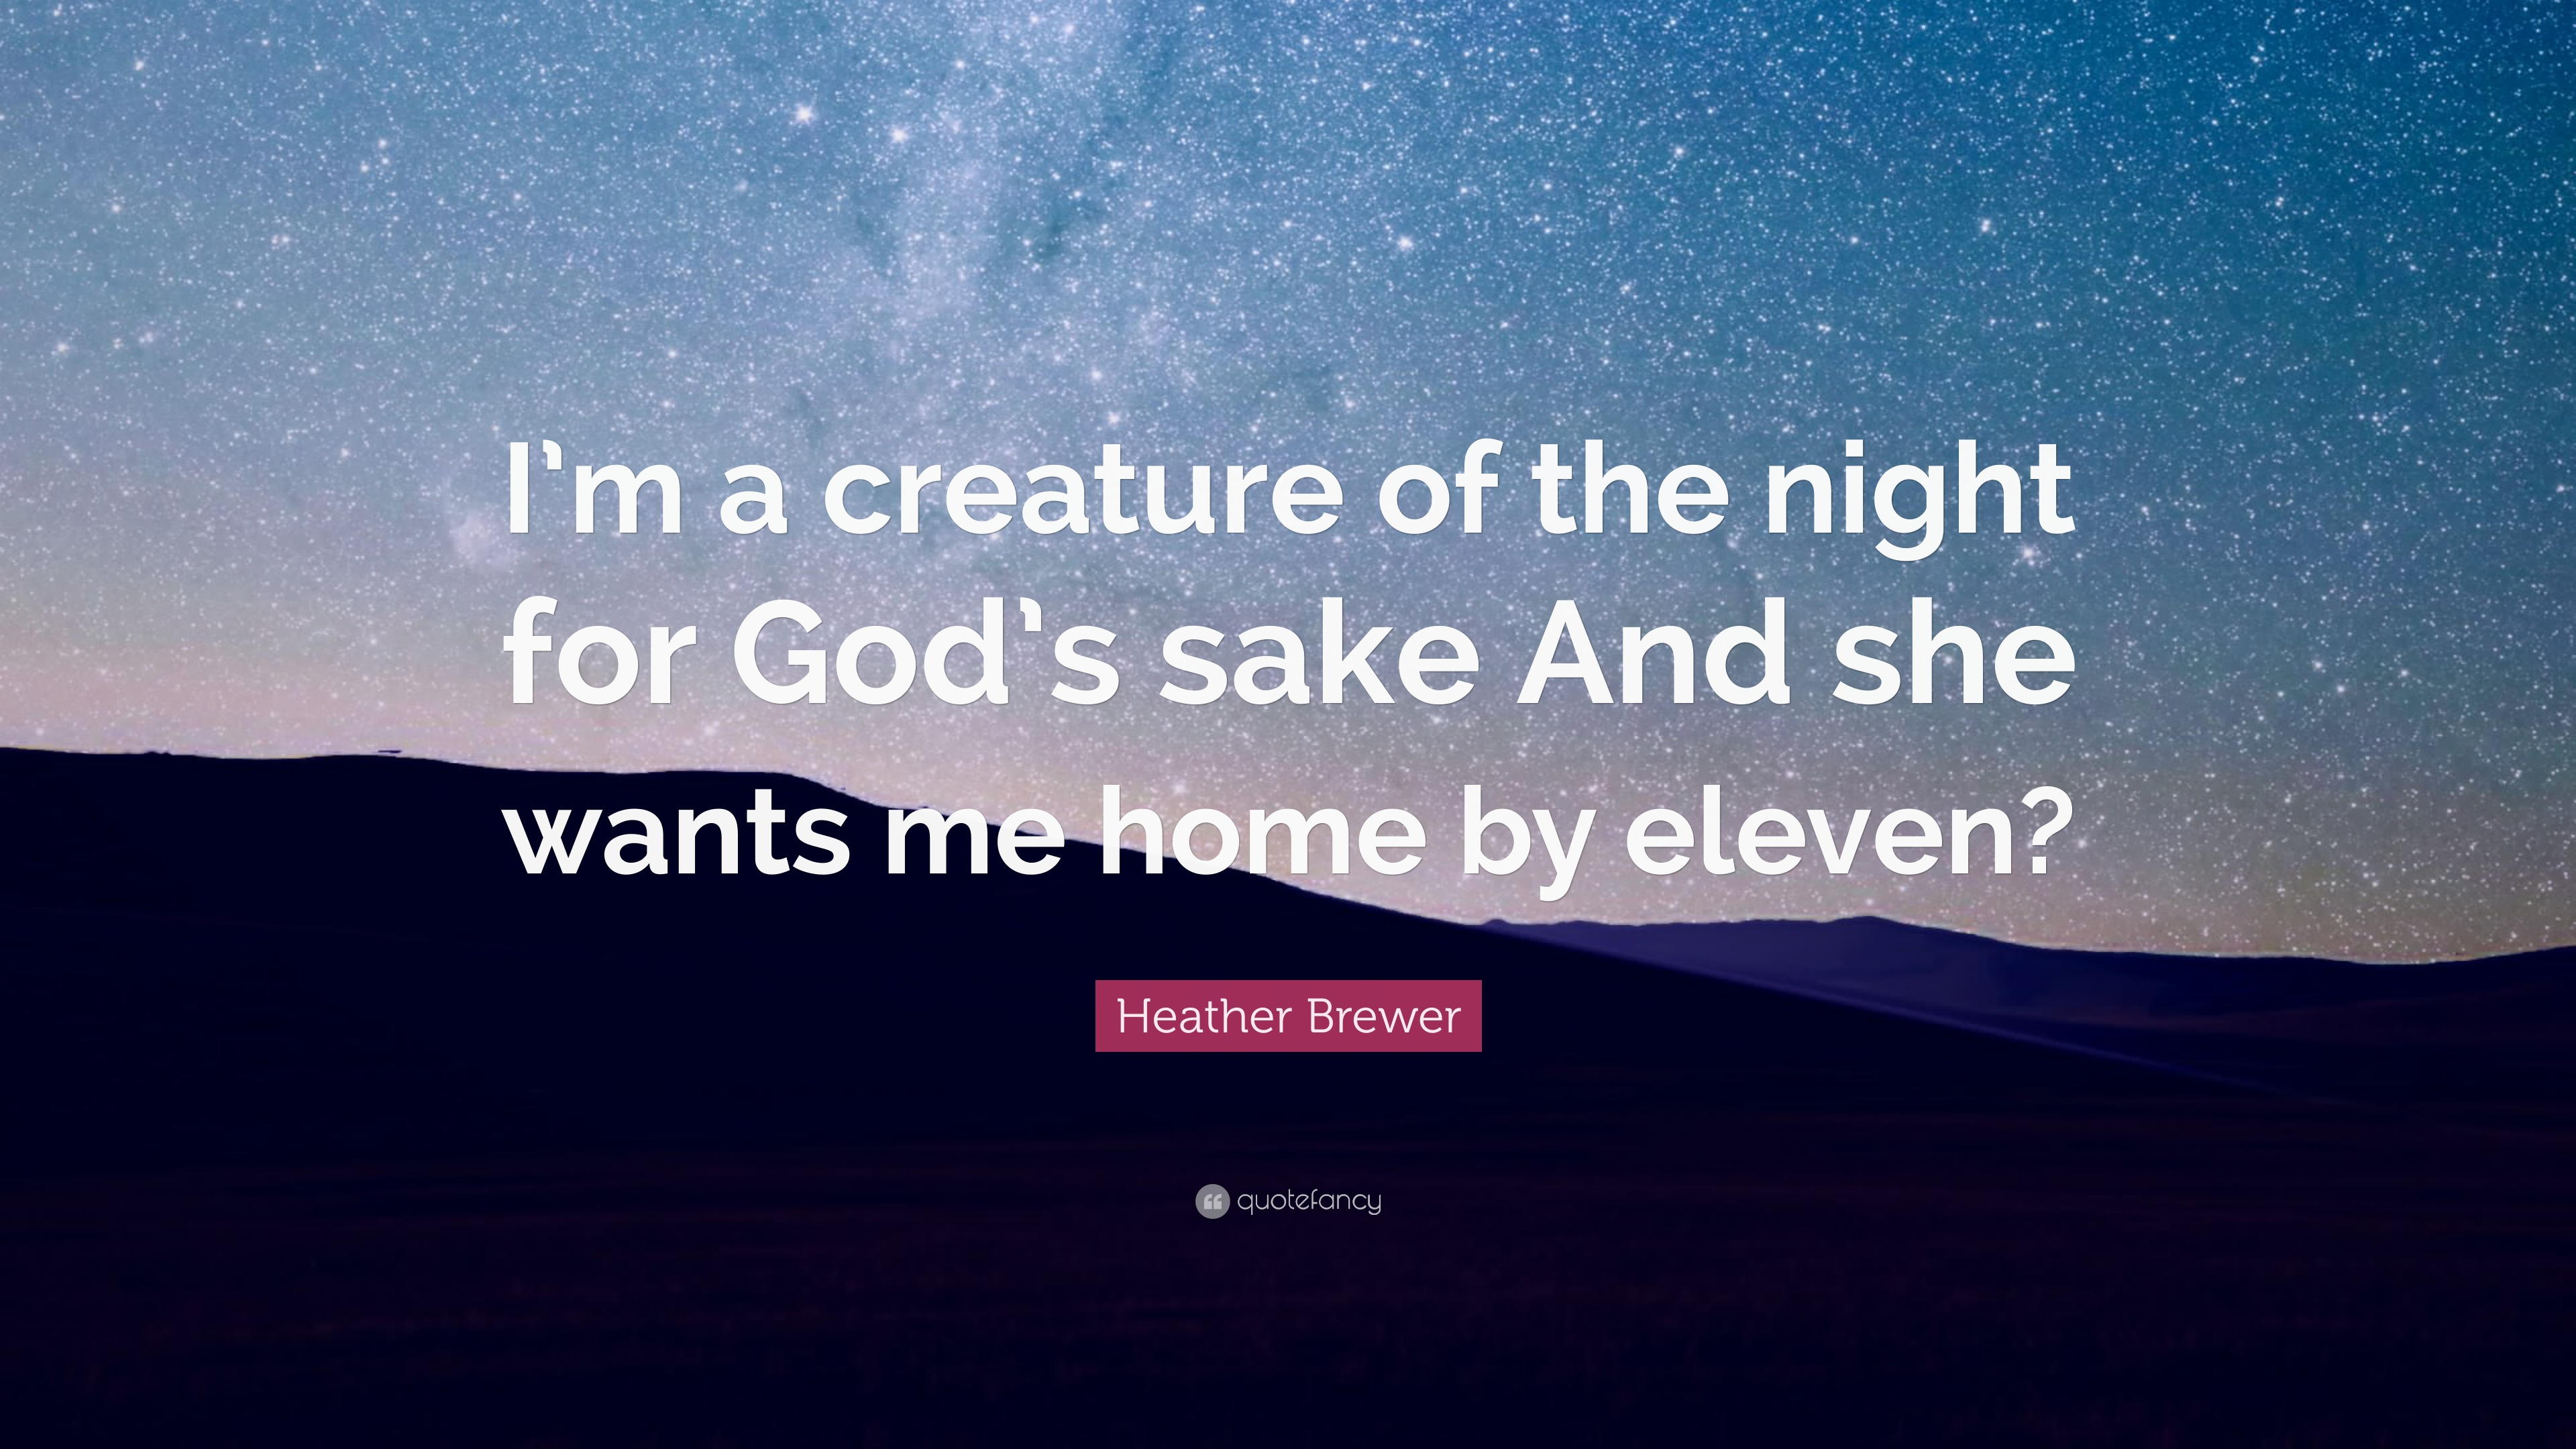 Popular Wallpaper Night God - 1168163-Heather-Brewer-Quote-I-m-a-creature-of-the-night-for-God-s-sake  Best Photo Reference-85645.jpg